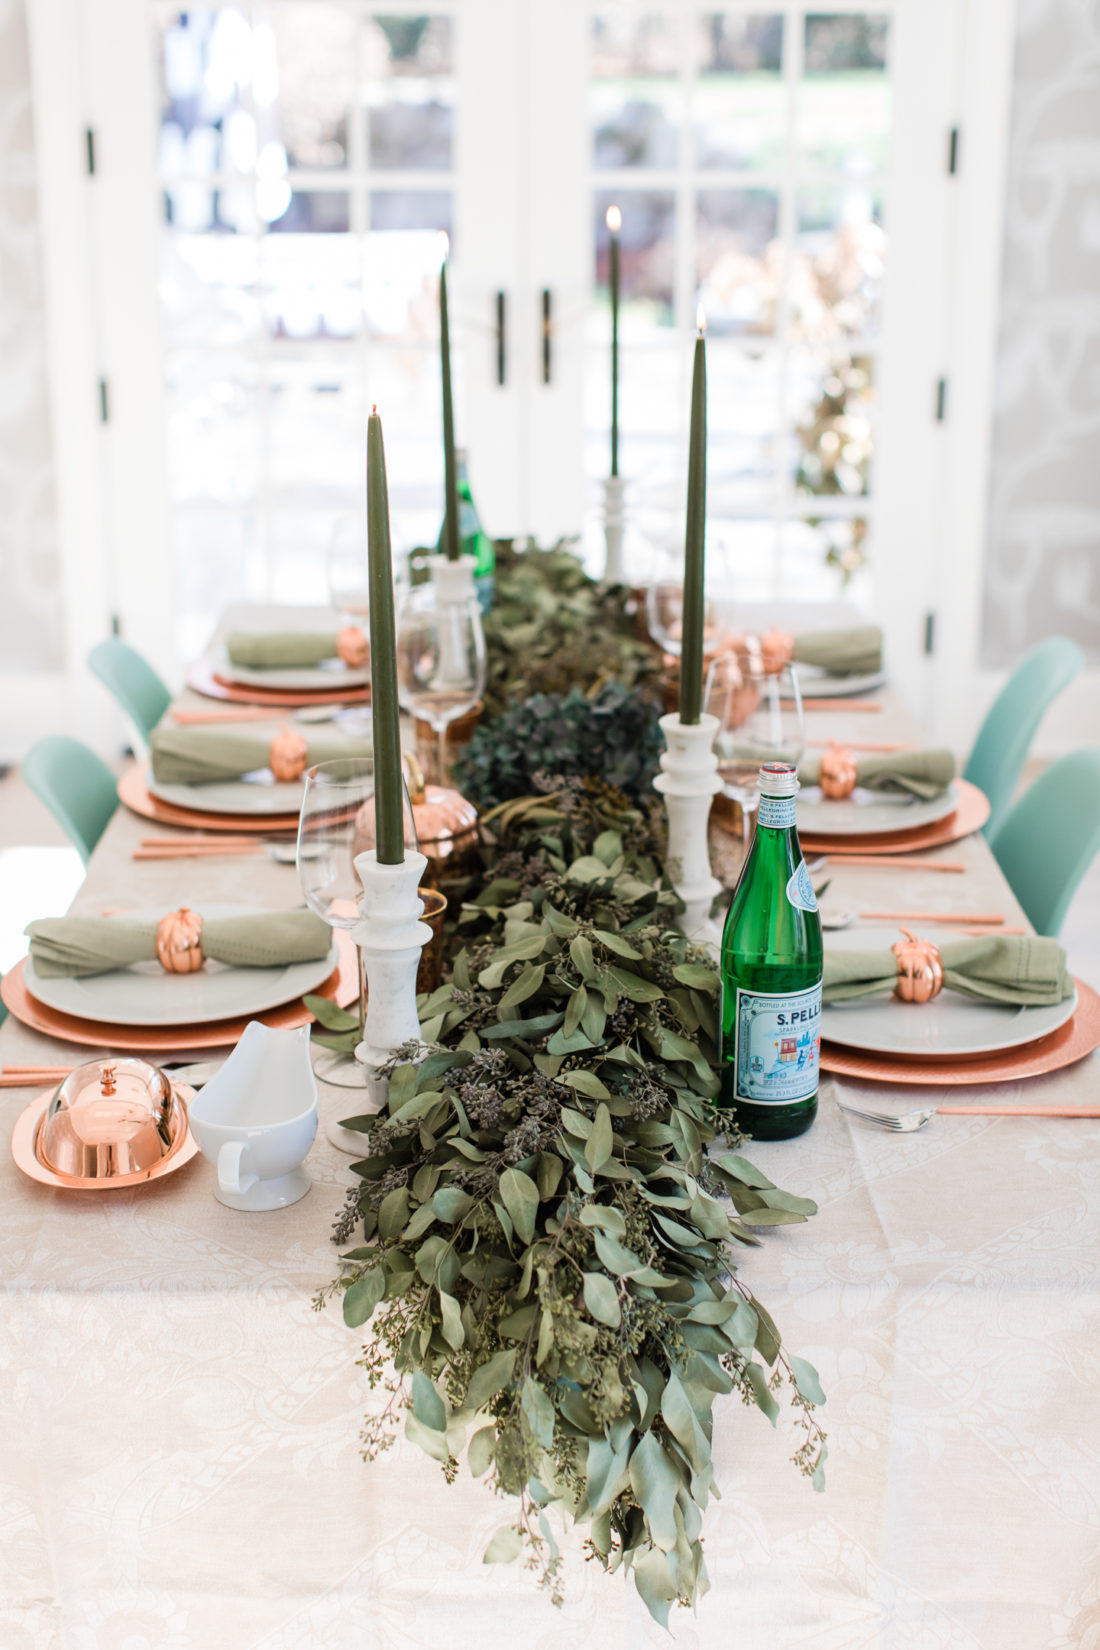 A eucaluptus garland, marble candlesticks with green candles, and a green and copper color scheme add style to Eva Amurri Martino's thanksgiving table